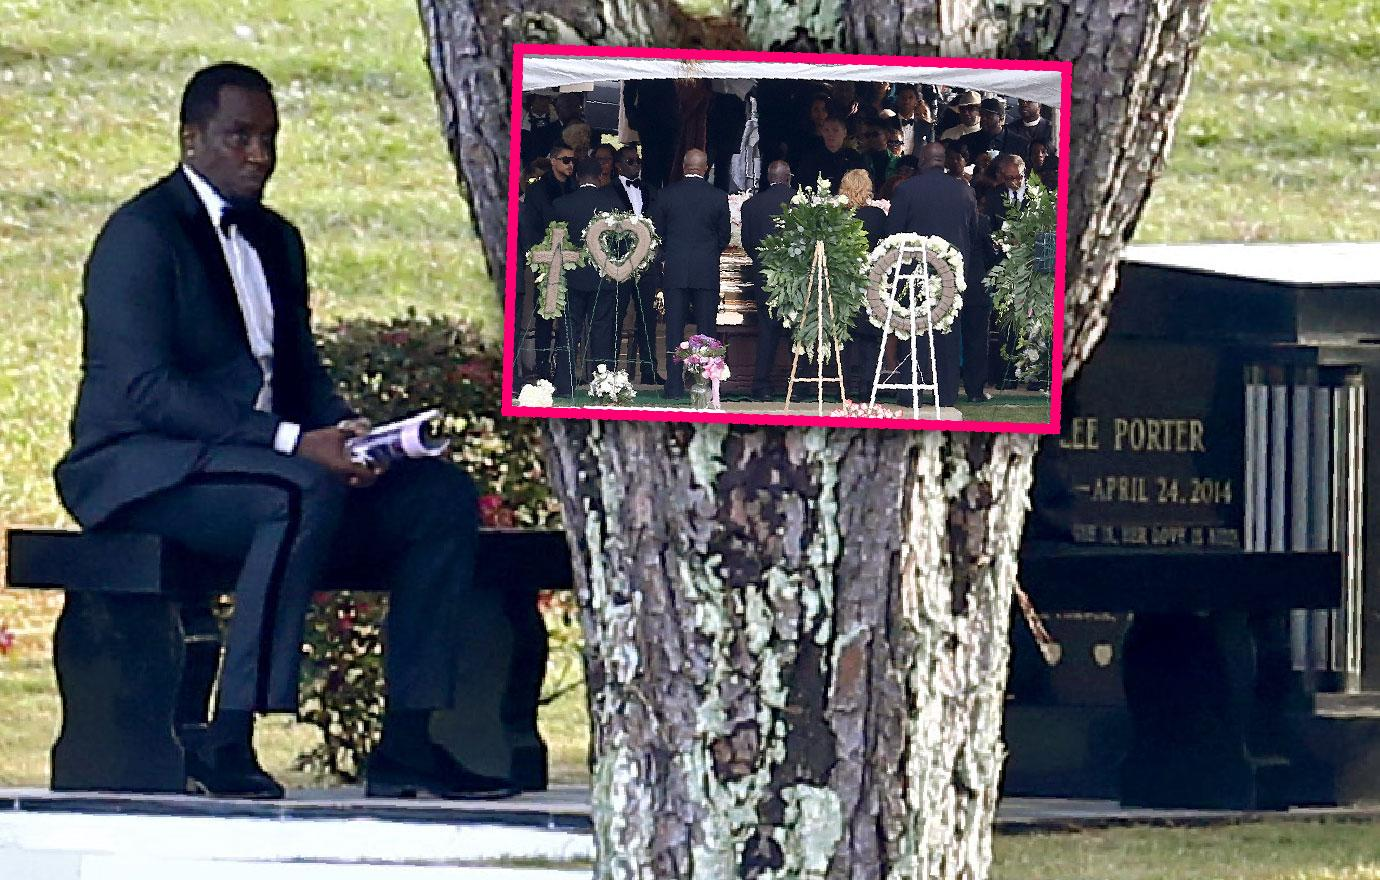 Diddy Delivers Eulogy Holds Hands With Mary J. Blige Kim Porter Funeral